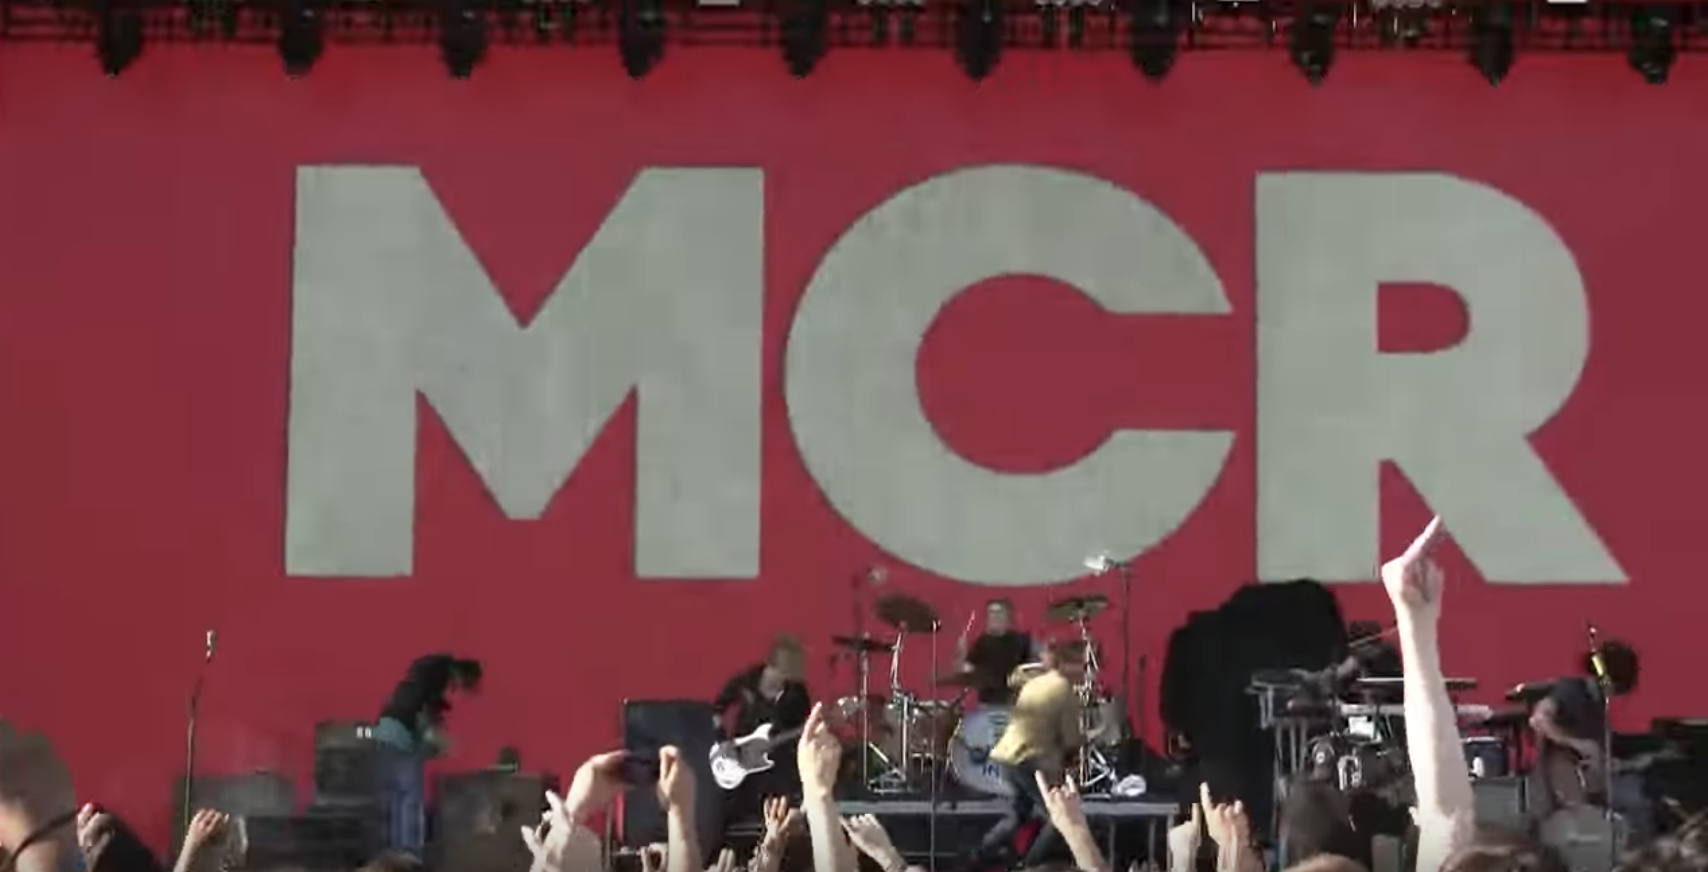 Watch Some Videos From The Last My Chemical Romance Performance